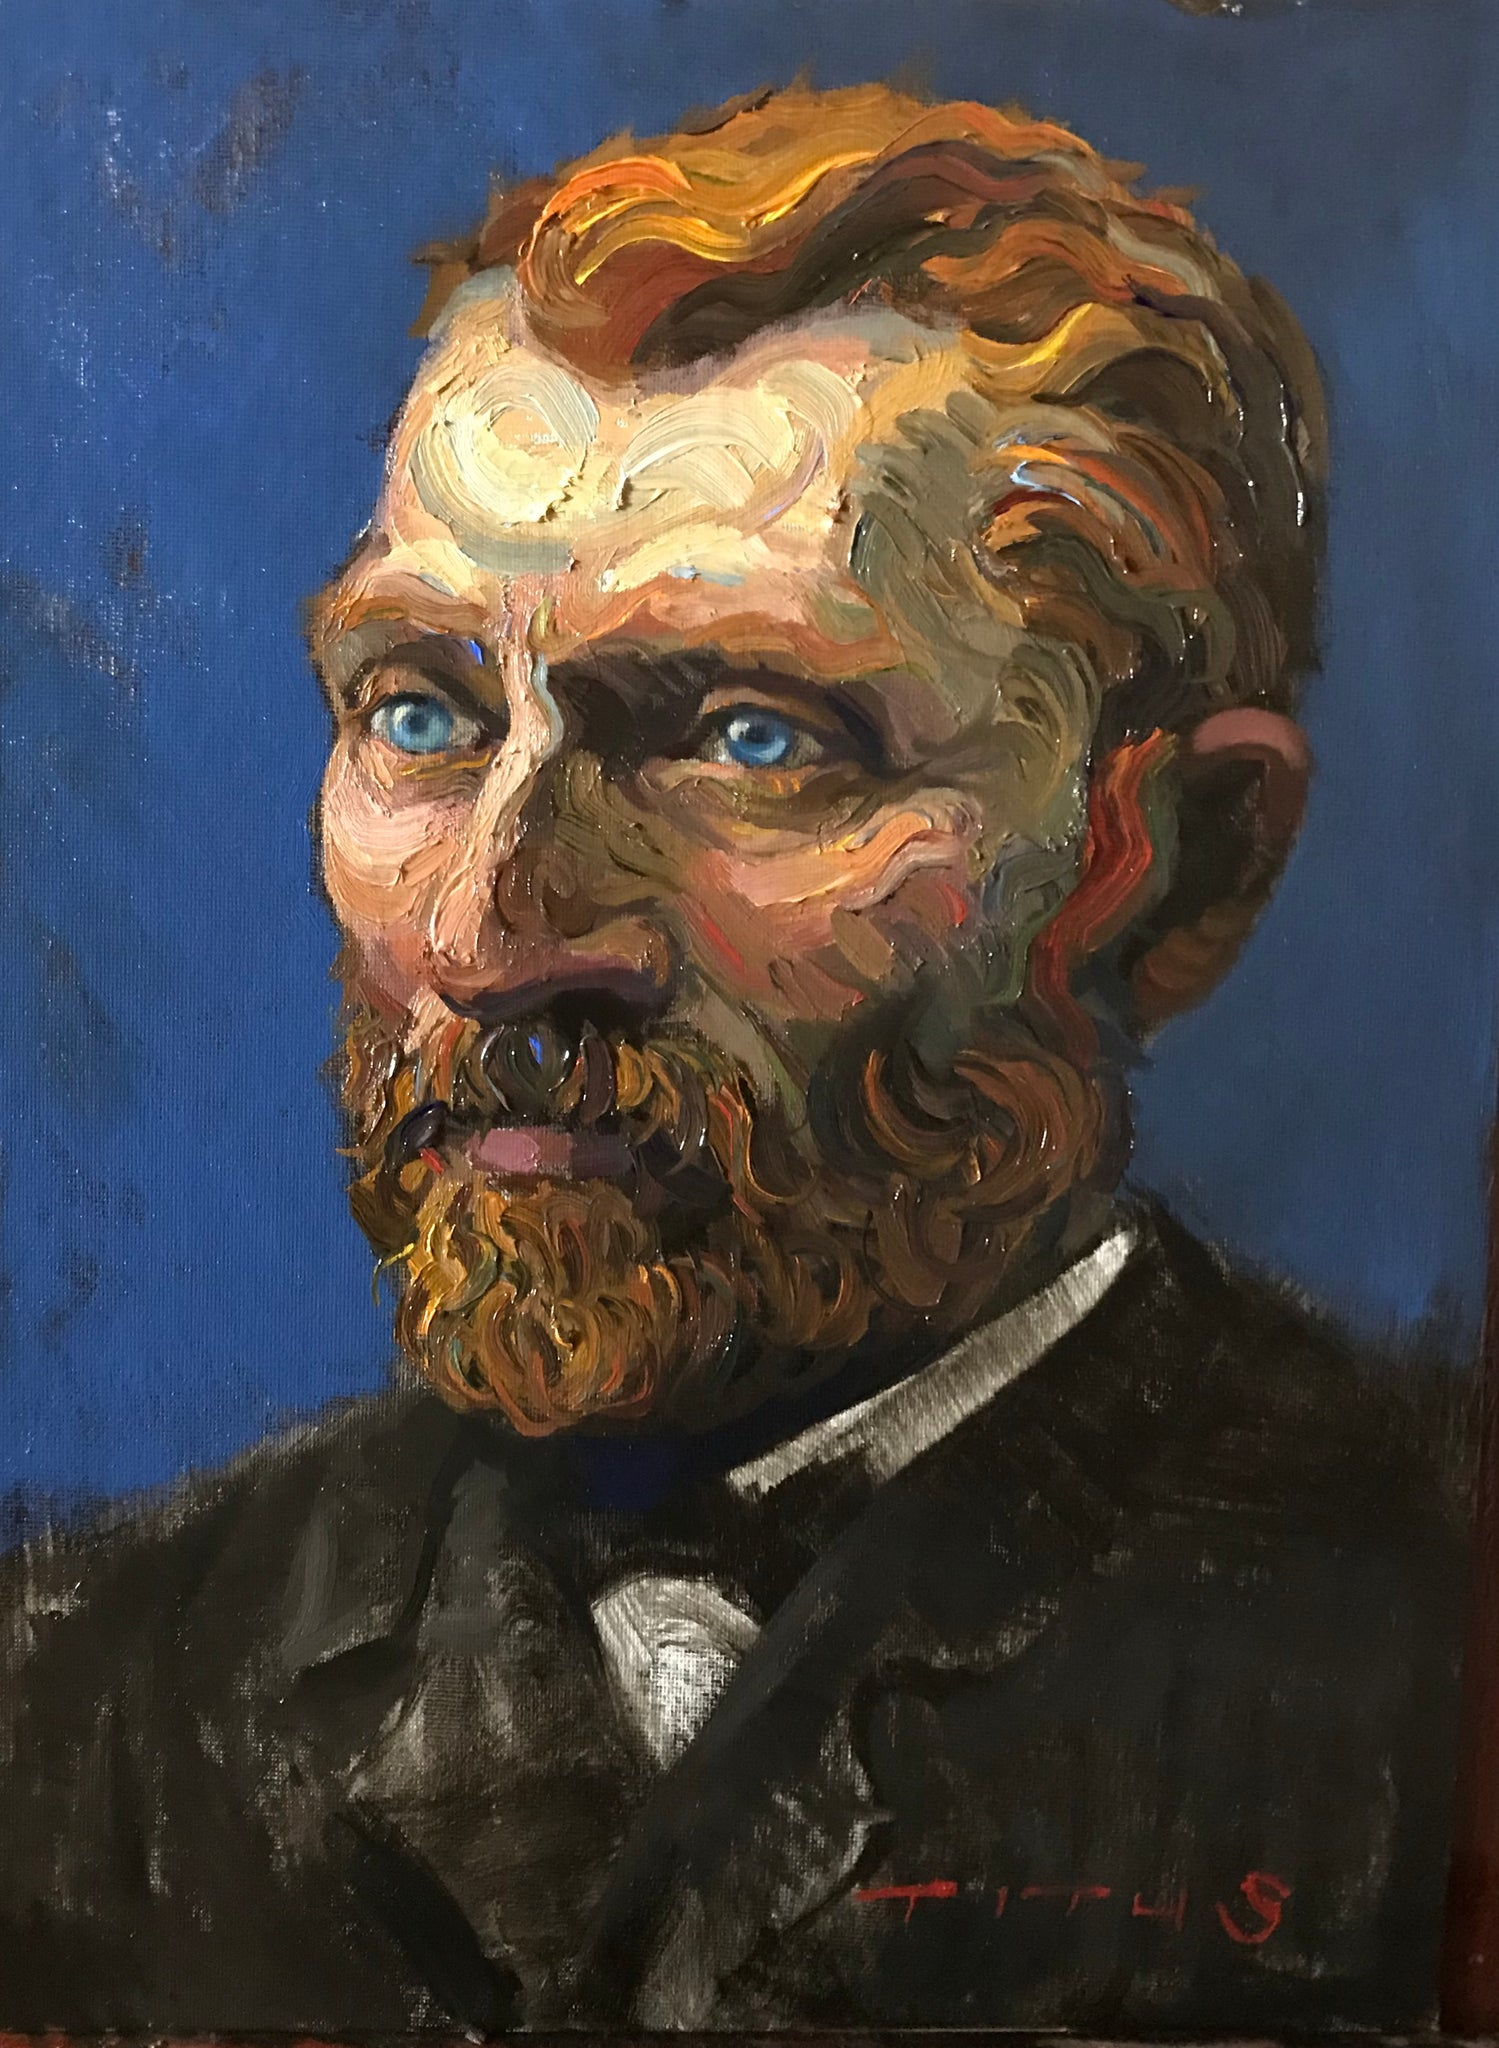 Van Gogh, 12x16 inches